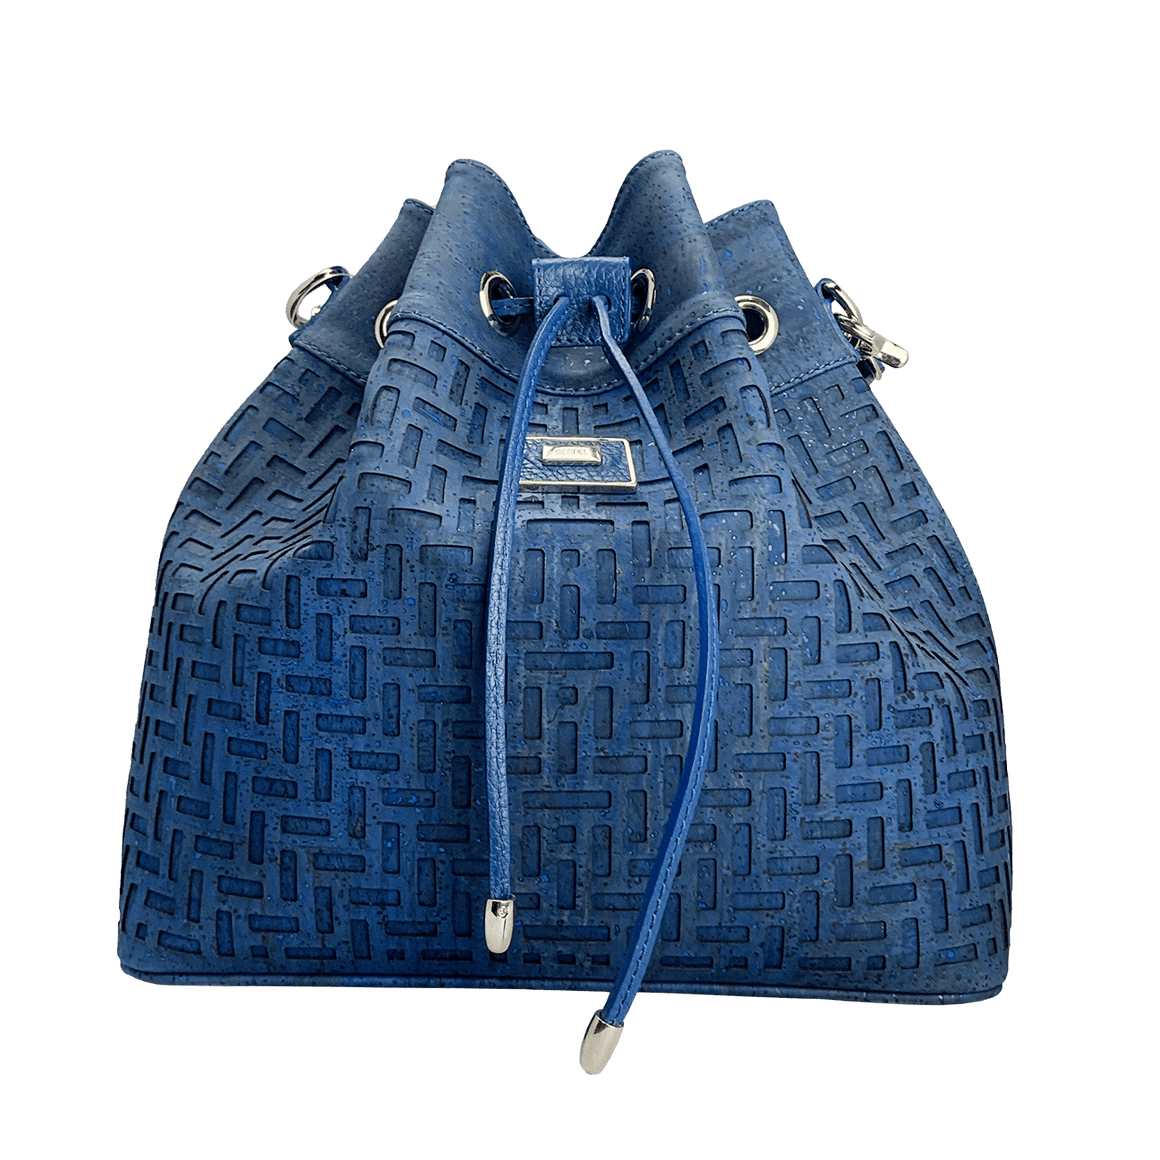 Artipel Drawstring Backpack with Cutouts - Blue - Naturally Anti-Microbial Hypoallergenic Sustainable Eco-Friendly Cork